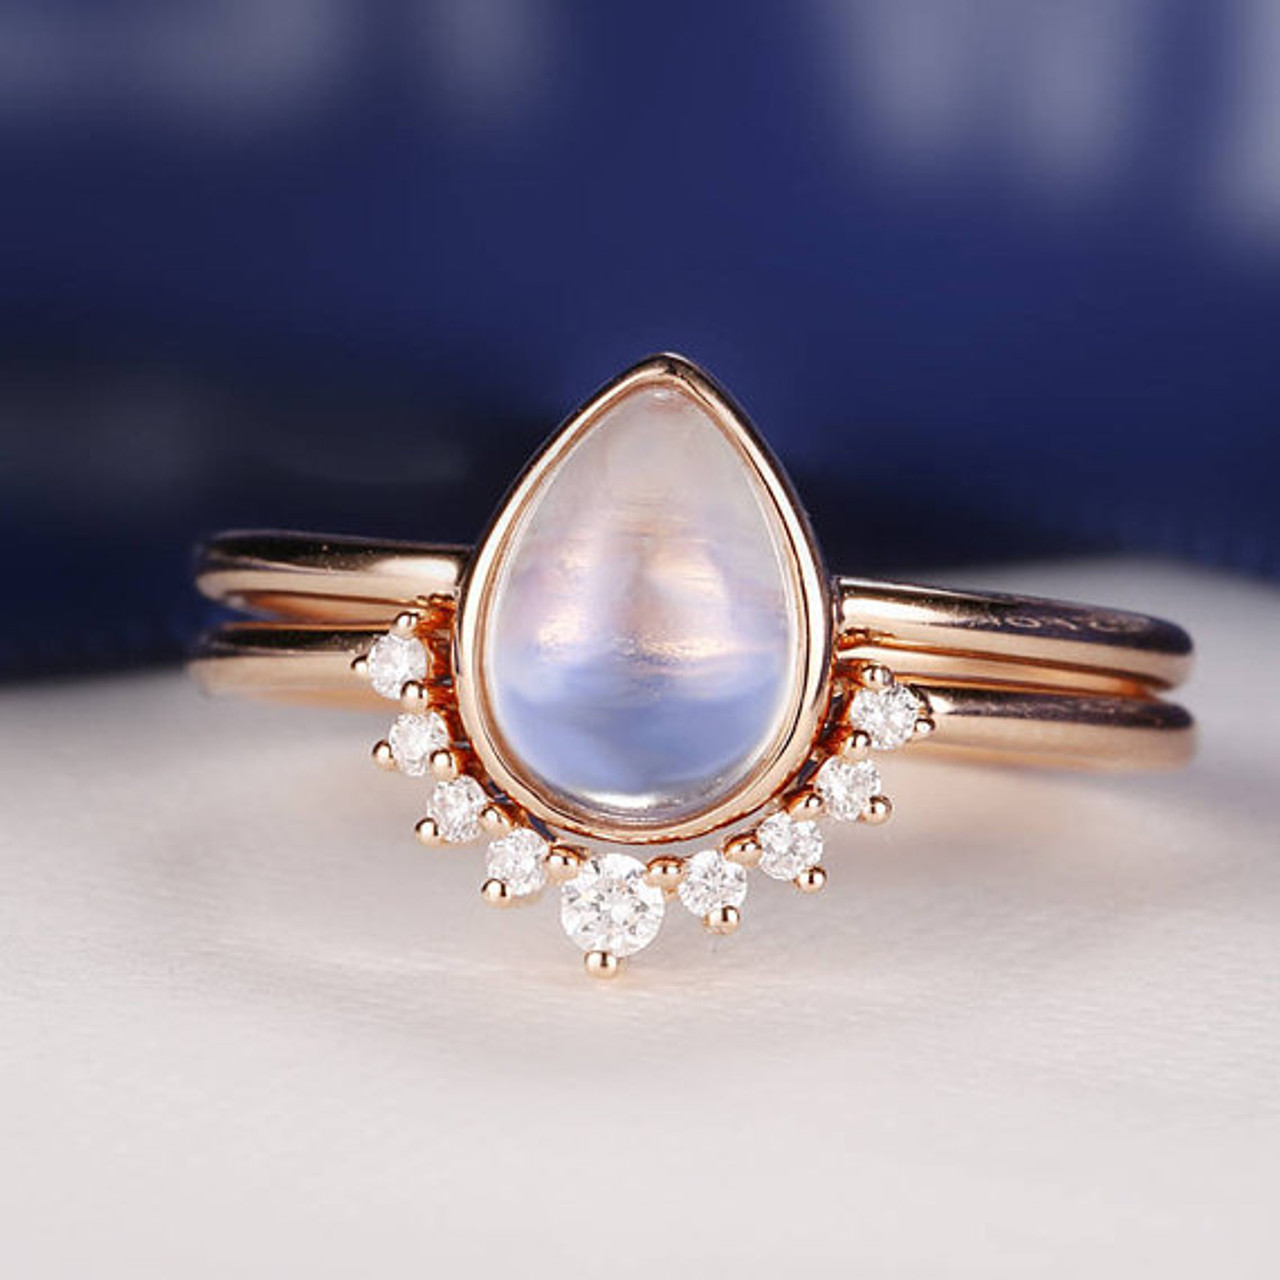 Moonstone Engagement Ring Rose Gold Vintage Delicate Diamond Wedding women  Bridal set jewelry Simple Pear Shaped Cut Stacking Anniversary - BBBGEM 92cb24f9bf10